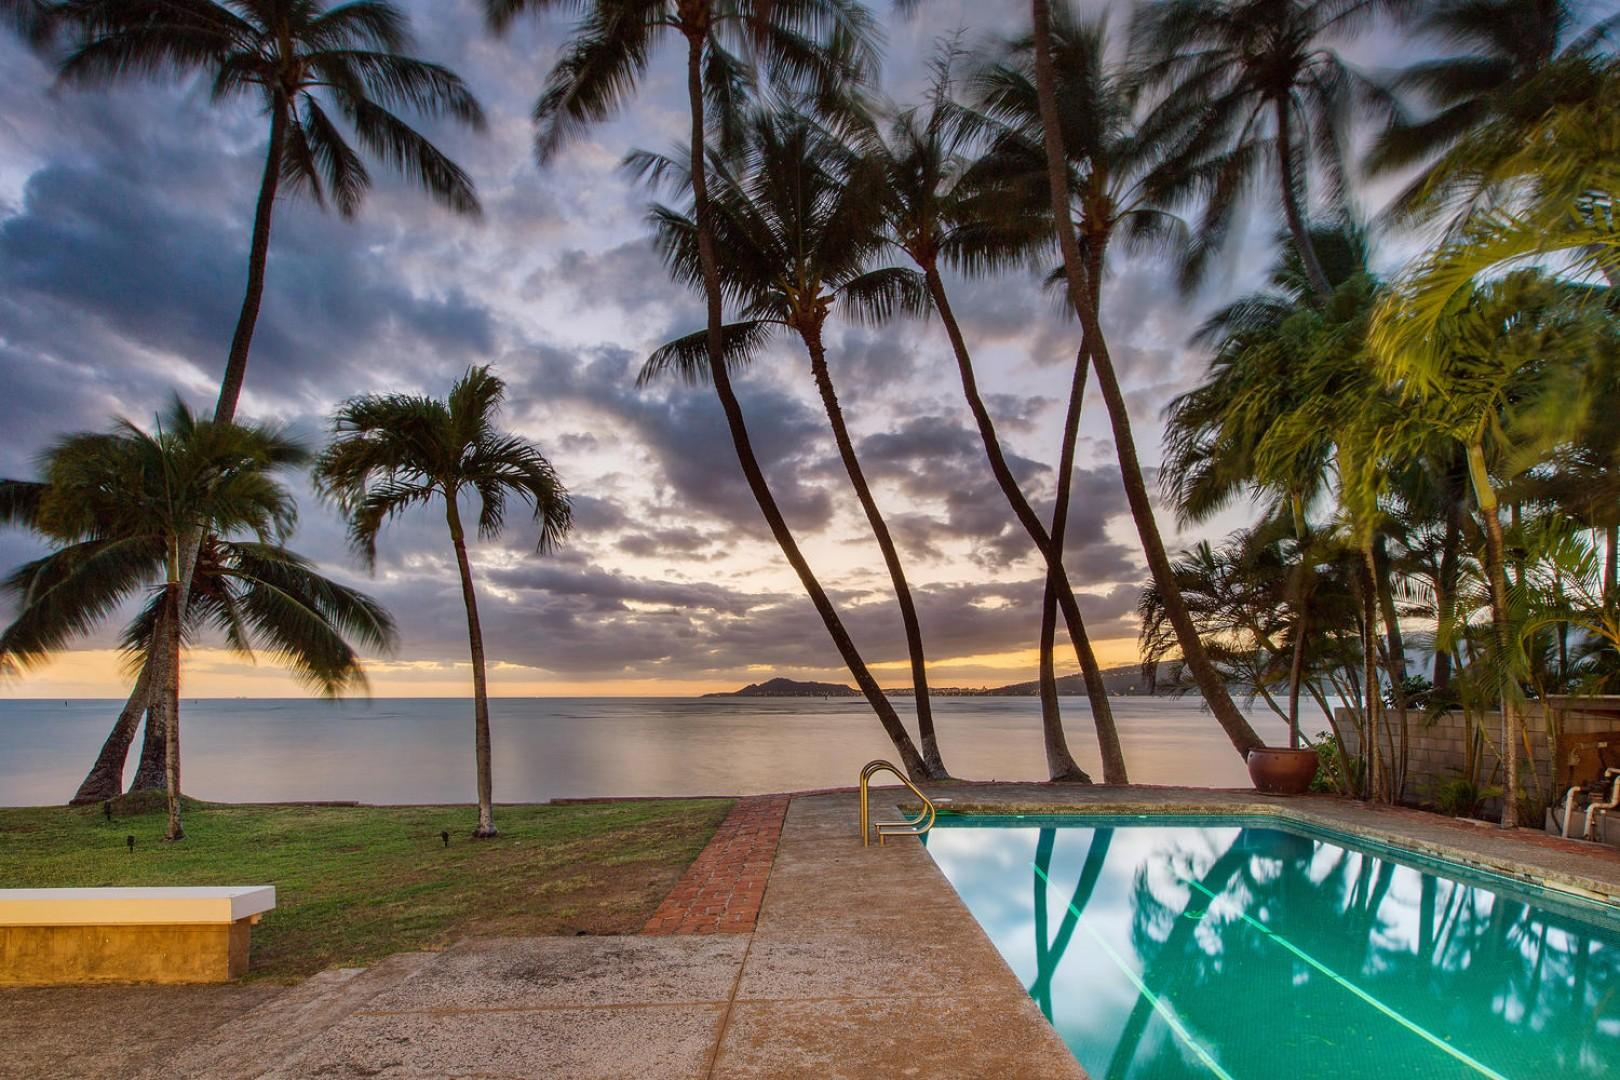 Welcome to Hale Kai! Where the ocean waves calm your soul.